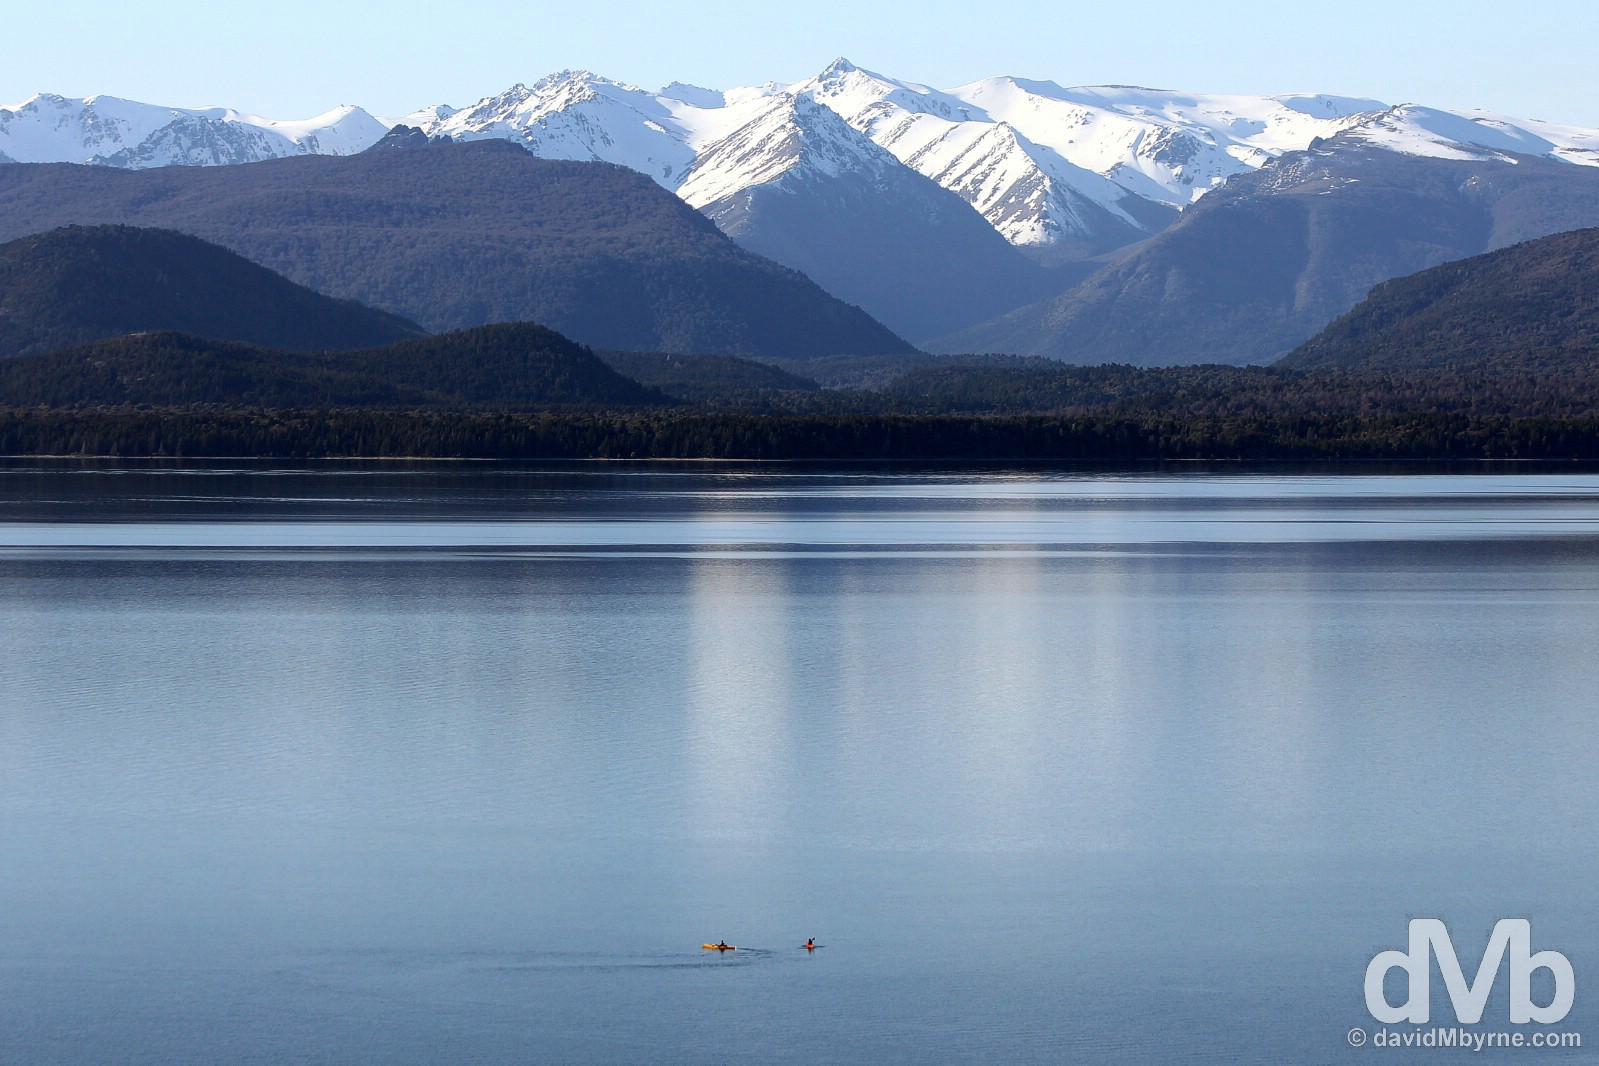 Kayaking on Lago Nahuel Huapi as seen from Bariloche, Patagonia, Argentina. October 17, 2015.